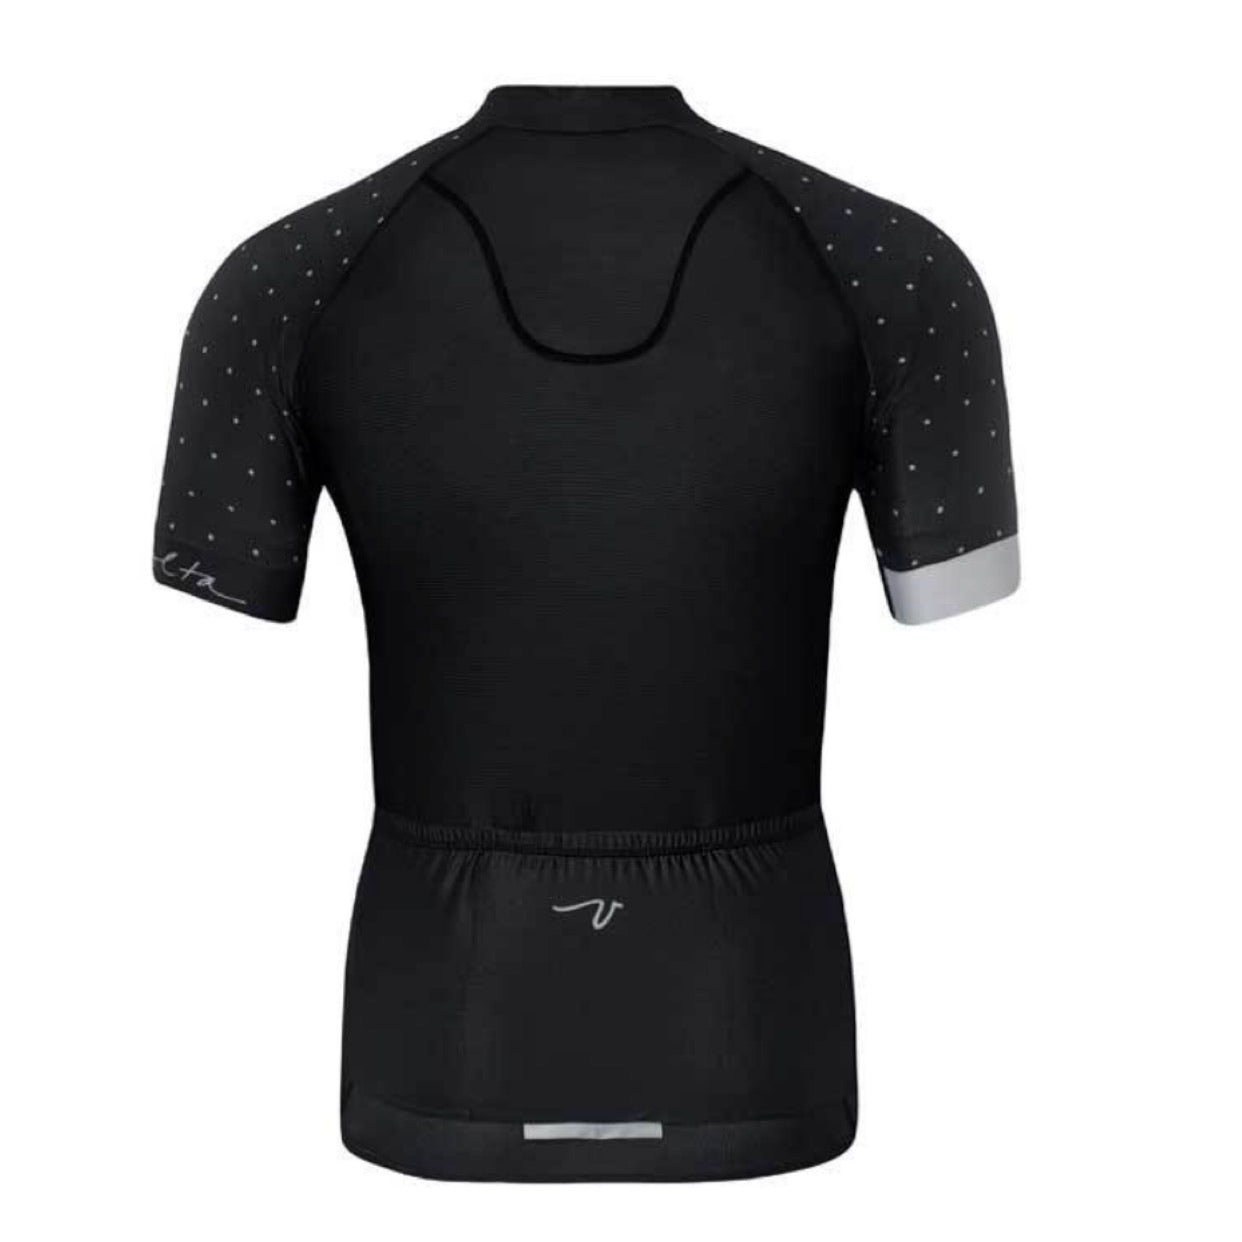 BLACK POLKA DOT MEN'S JERSEY